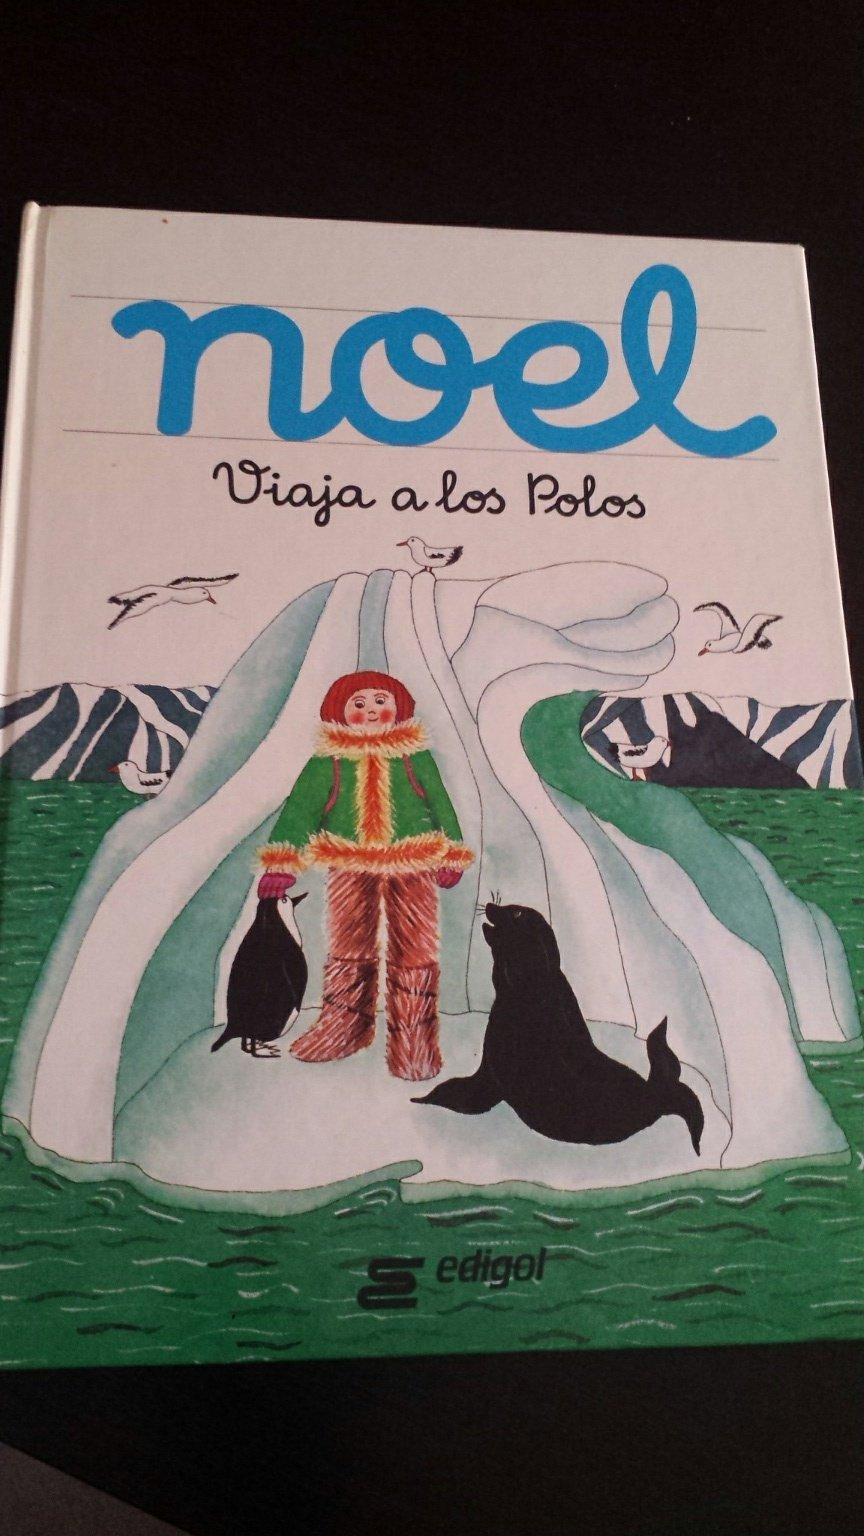 Noel Viaja a Los Polos/Noel Travels to the North and South Poles (Spanish Edition) (Spanish) Hardcover – November 1, 1986